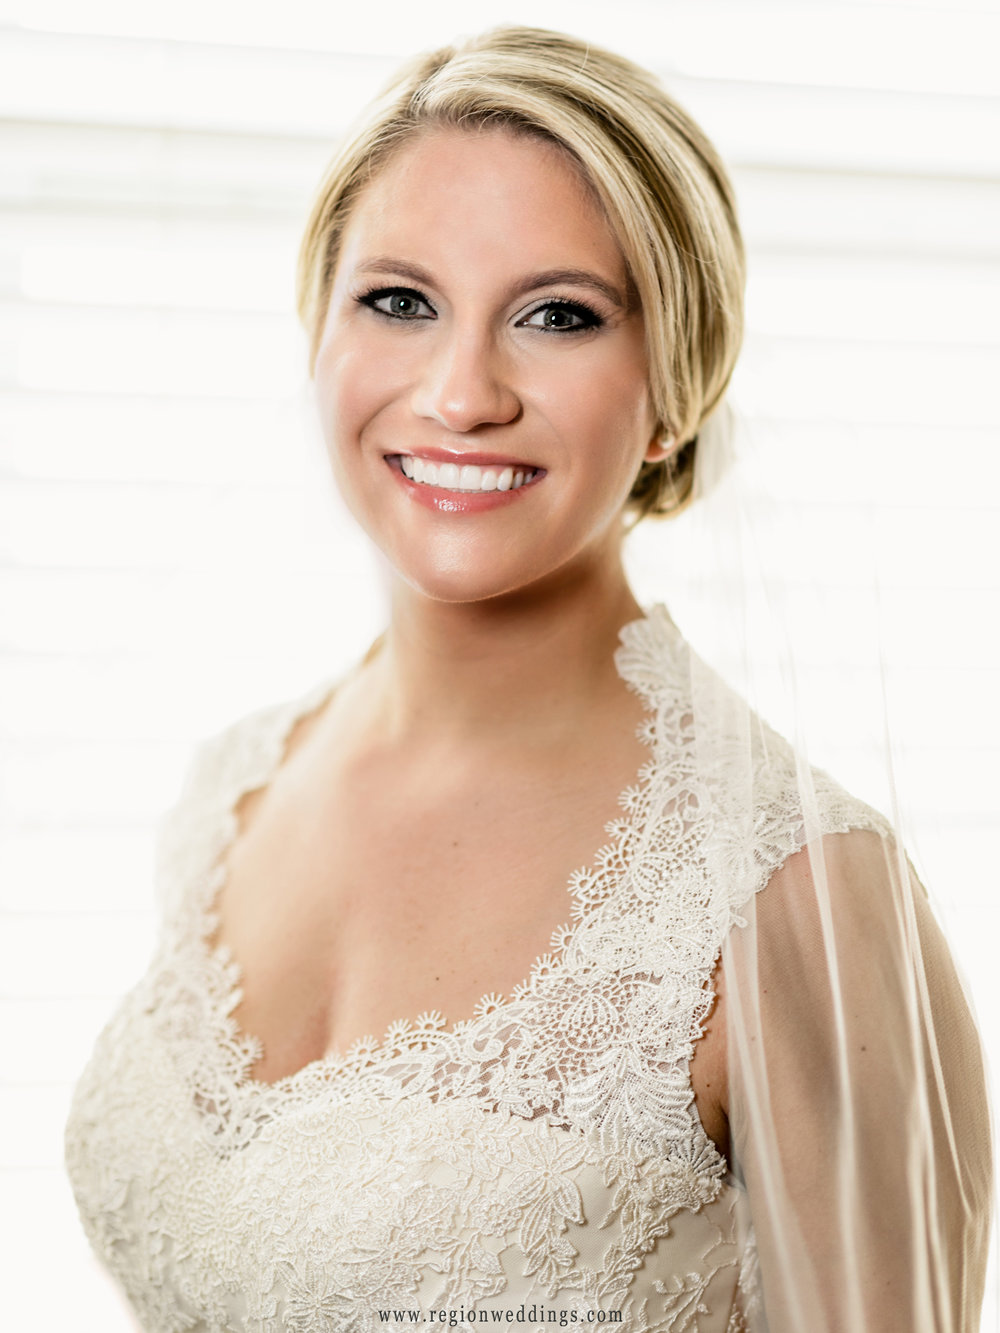 Portrait of the bride on her big day.